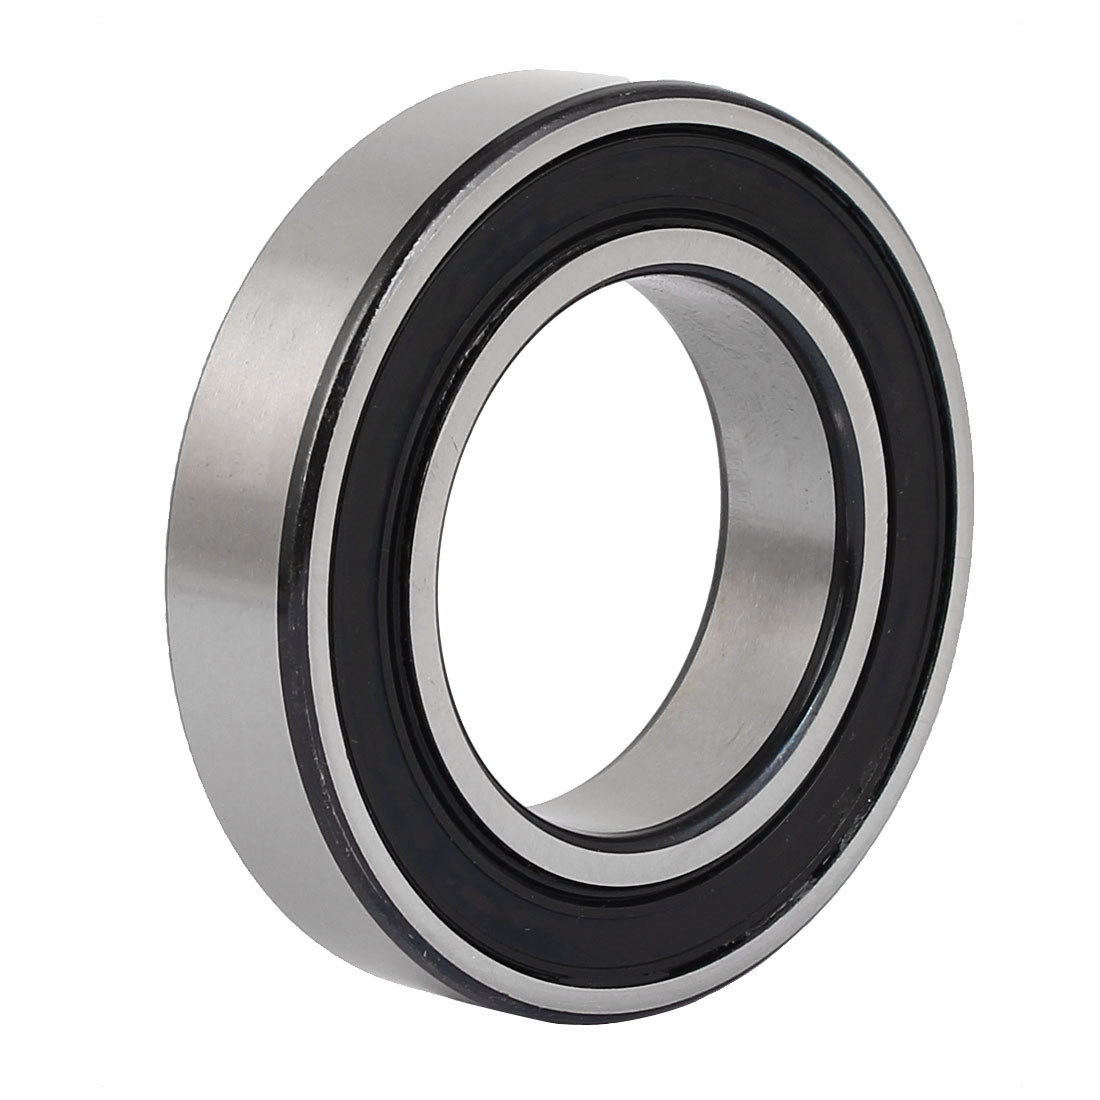 RZ6009 Double Shielded Deep Groove Ball Bearing 75mmx45mmx16mm